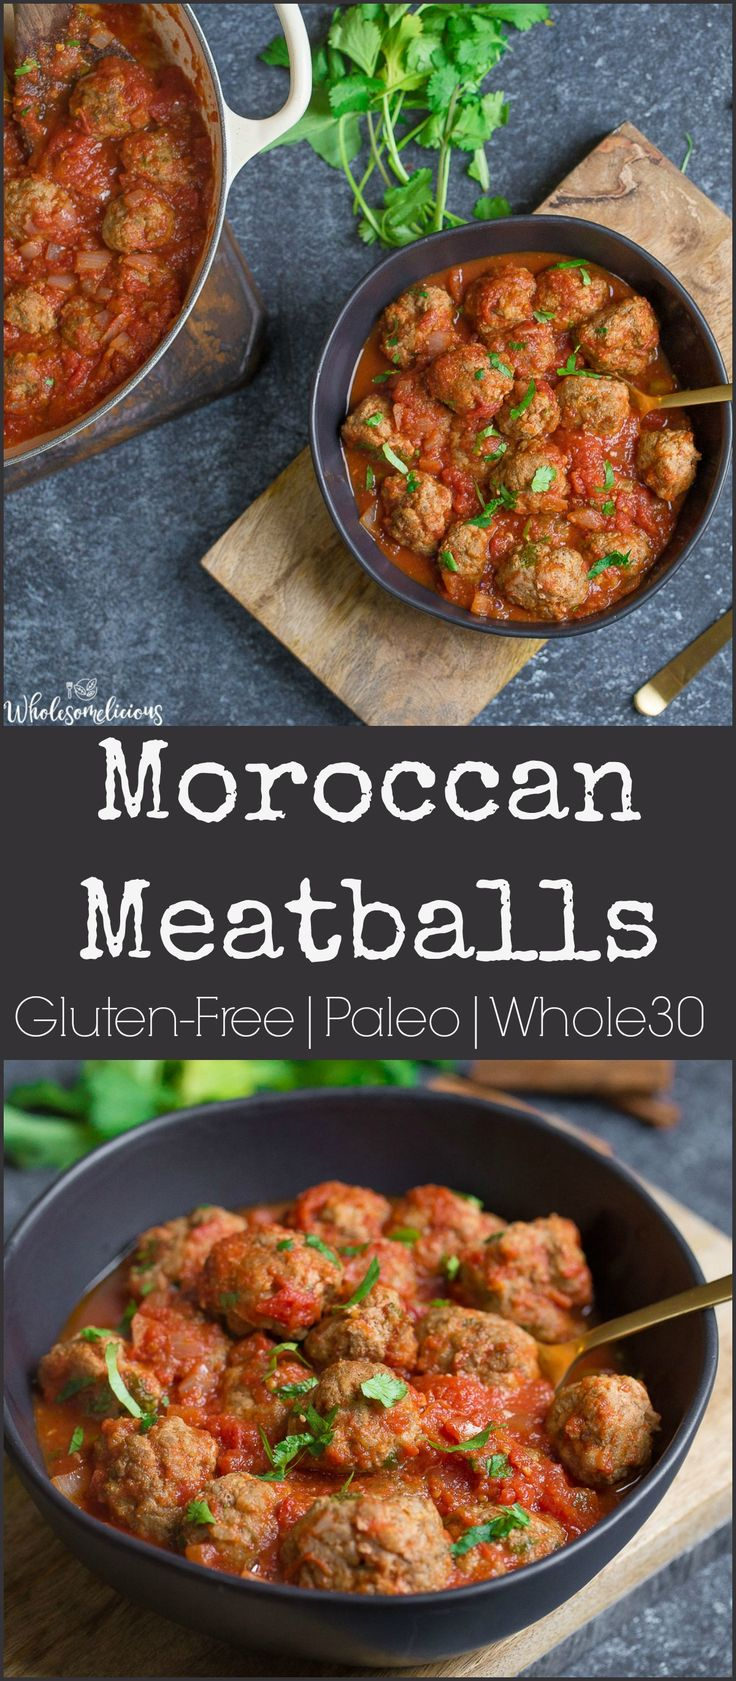 These flavorful meatballs are simmered in a spicy Moroccan tomato sauce for a delicious dinner or appetizer! So easy to make. Paleo, GF, and Whole30 approved. #paleo #glutenfree #whole30